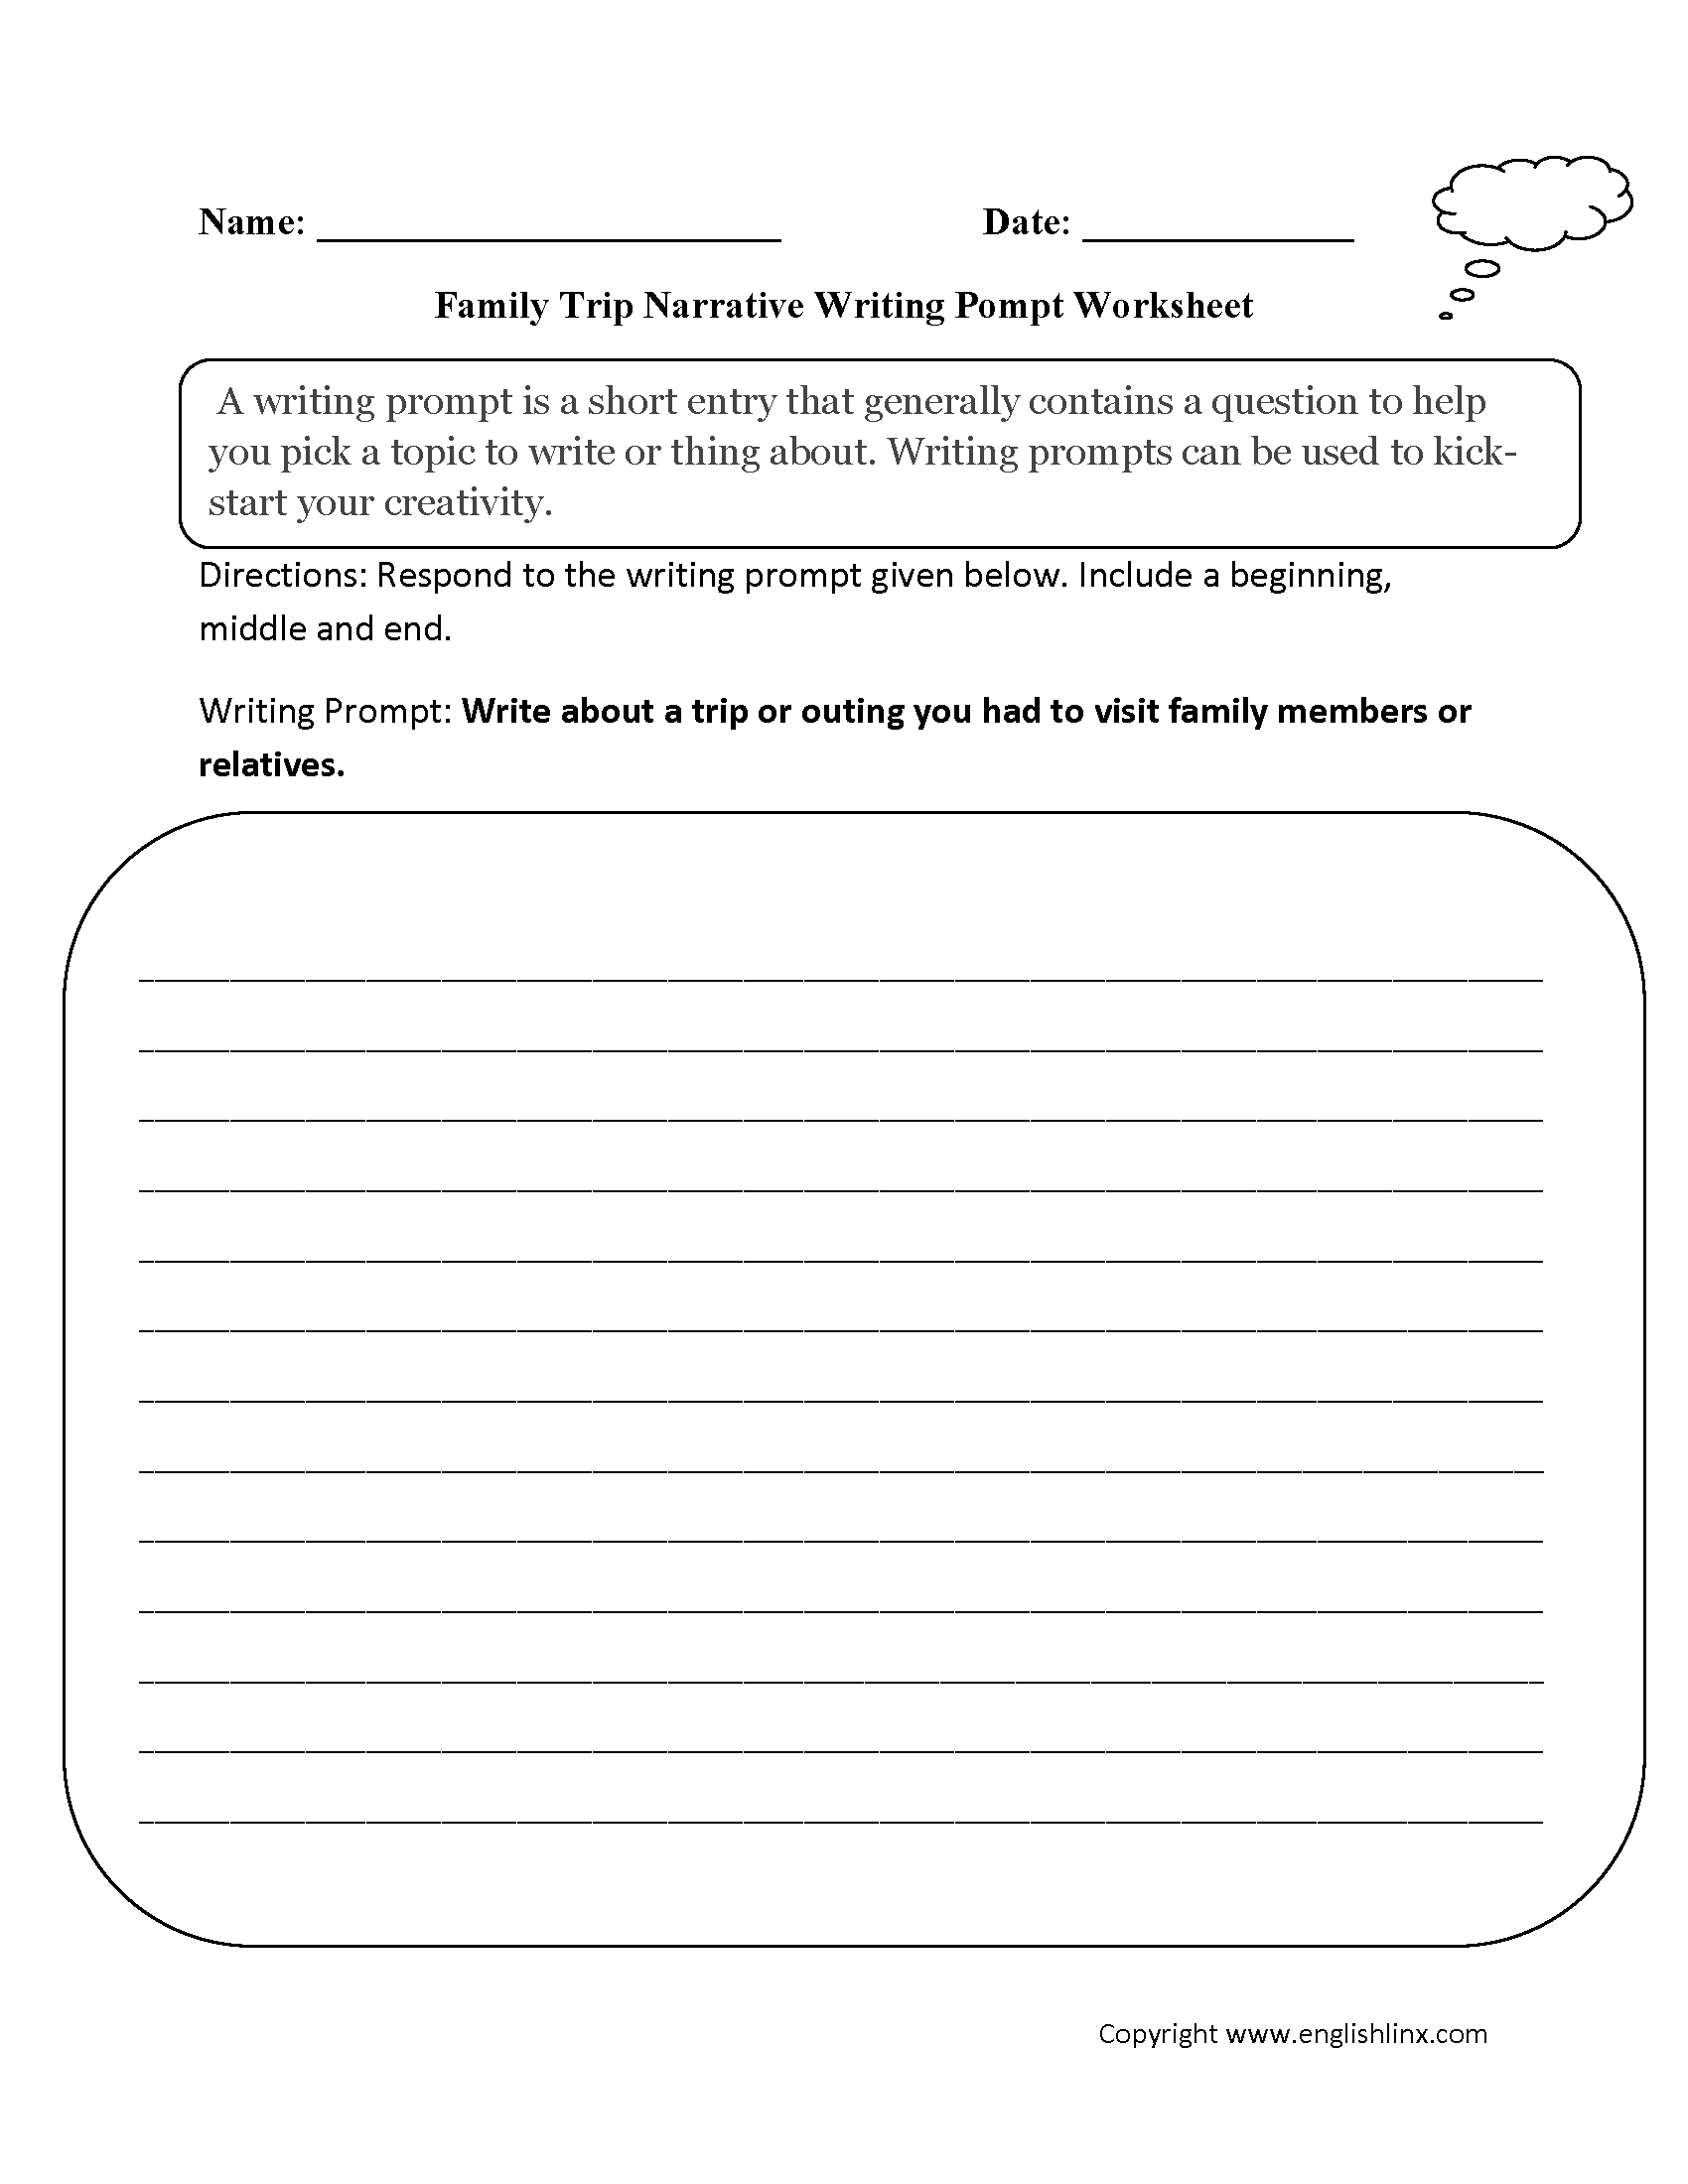 Writing Prompt Worksheets Would Be Good For Warm Ups At